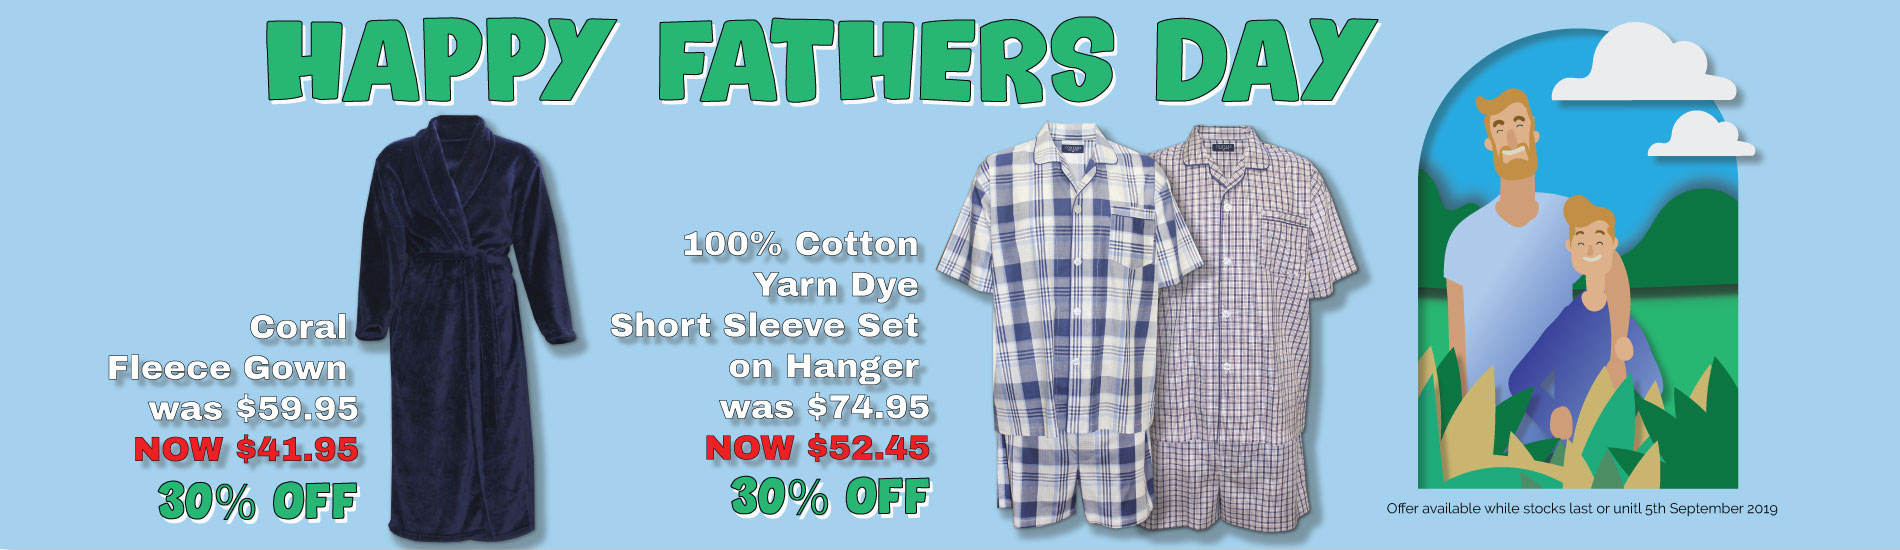 Contare-Fathers-Day-2019-websire-promo